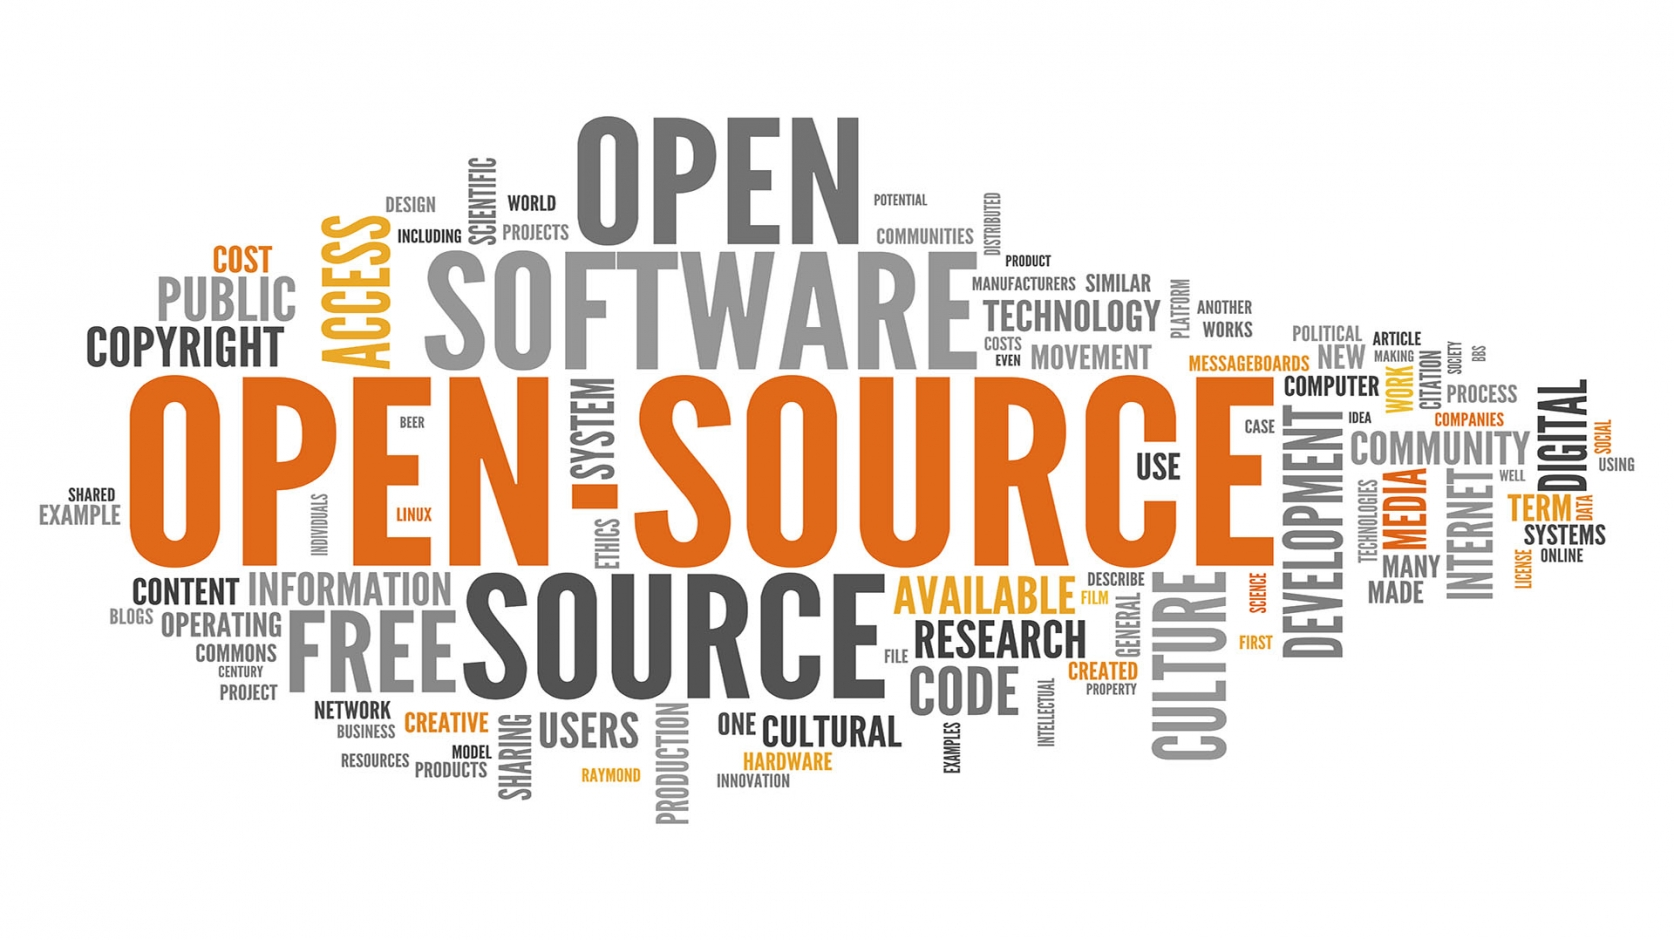 Open Source Myths and Half-Truths: Part 1